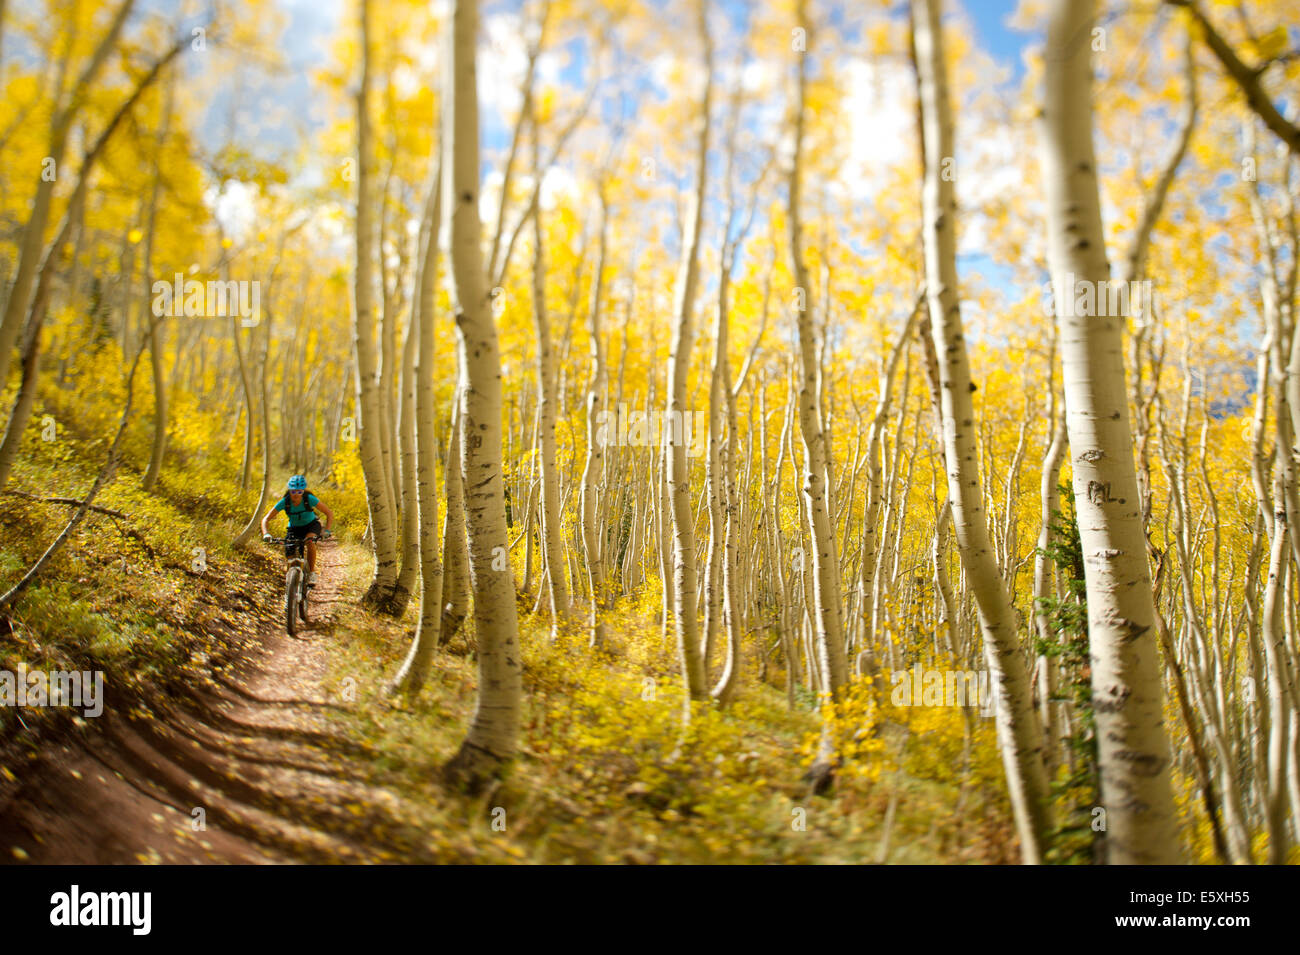 Jessie Anderson rides her mountain bike on the Wasatch Crest Trail in Big Cottonwood Canyon, Utah - Stock Image